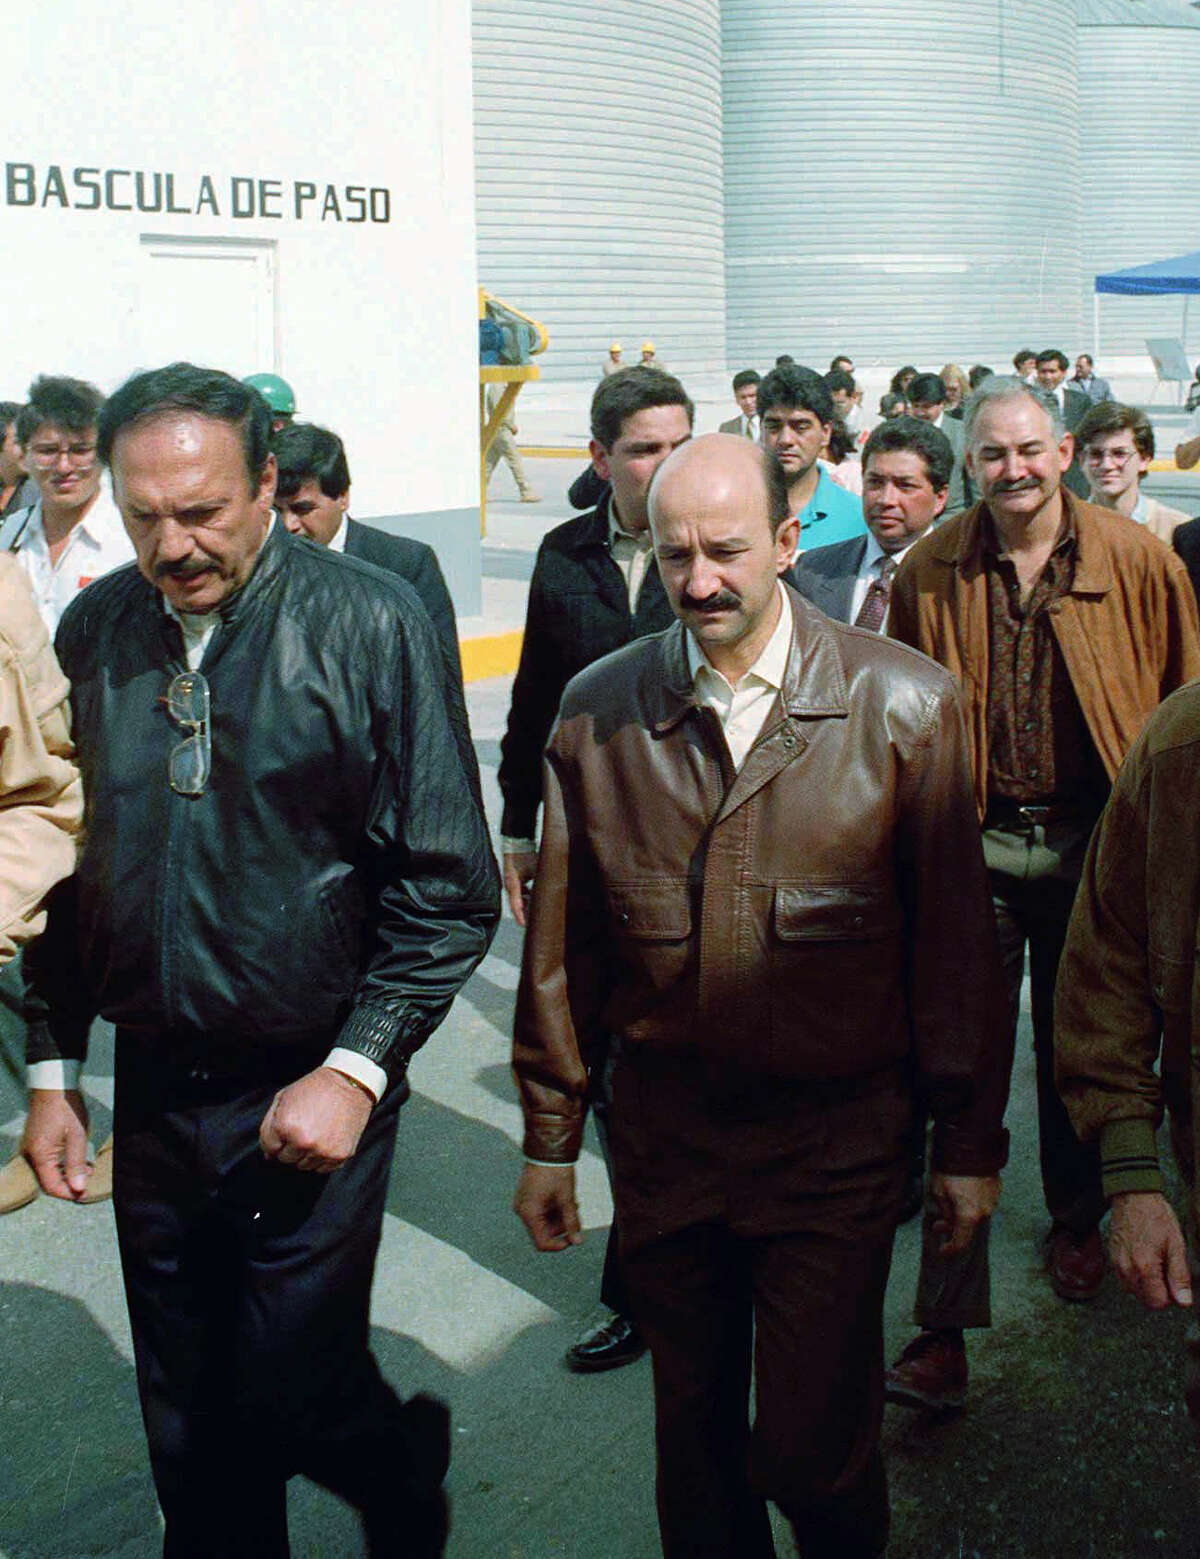 FILE - Roberto Gonzalez Barrera, left, owner of Maseca (now Gruma), and the Mexican President Carlos Salinas de Gortari, walk together in this December 1991 file photo taken at the Maseca Corn Flour factory in Teotihuacan, outside Mexico City. Following the men at right is Raul Salinas de Gortari now in jail on charges of masterminding the murder of a top politician and illicit enrichment. The Mexican government on Friday, July 5, 1996, disputed a New York Times report that a congressional commission implicated Salinas' successor, President Ernesto Zedillo, in a questionable government payment to Barrera's company in 1989. (AP Photo/MIC Photo Press)